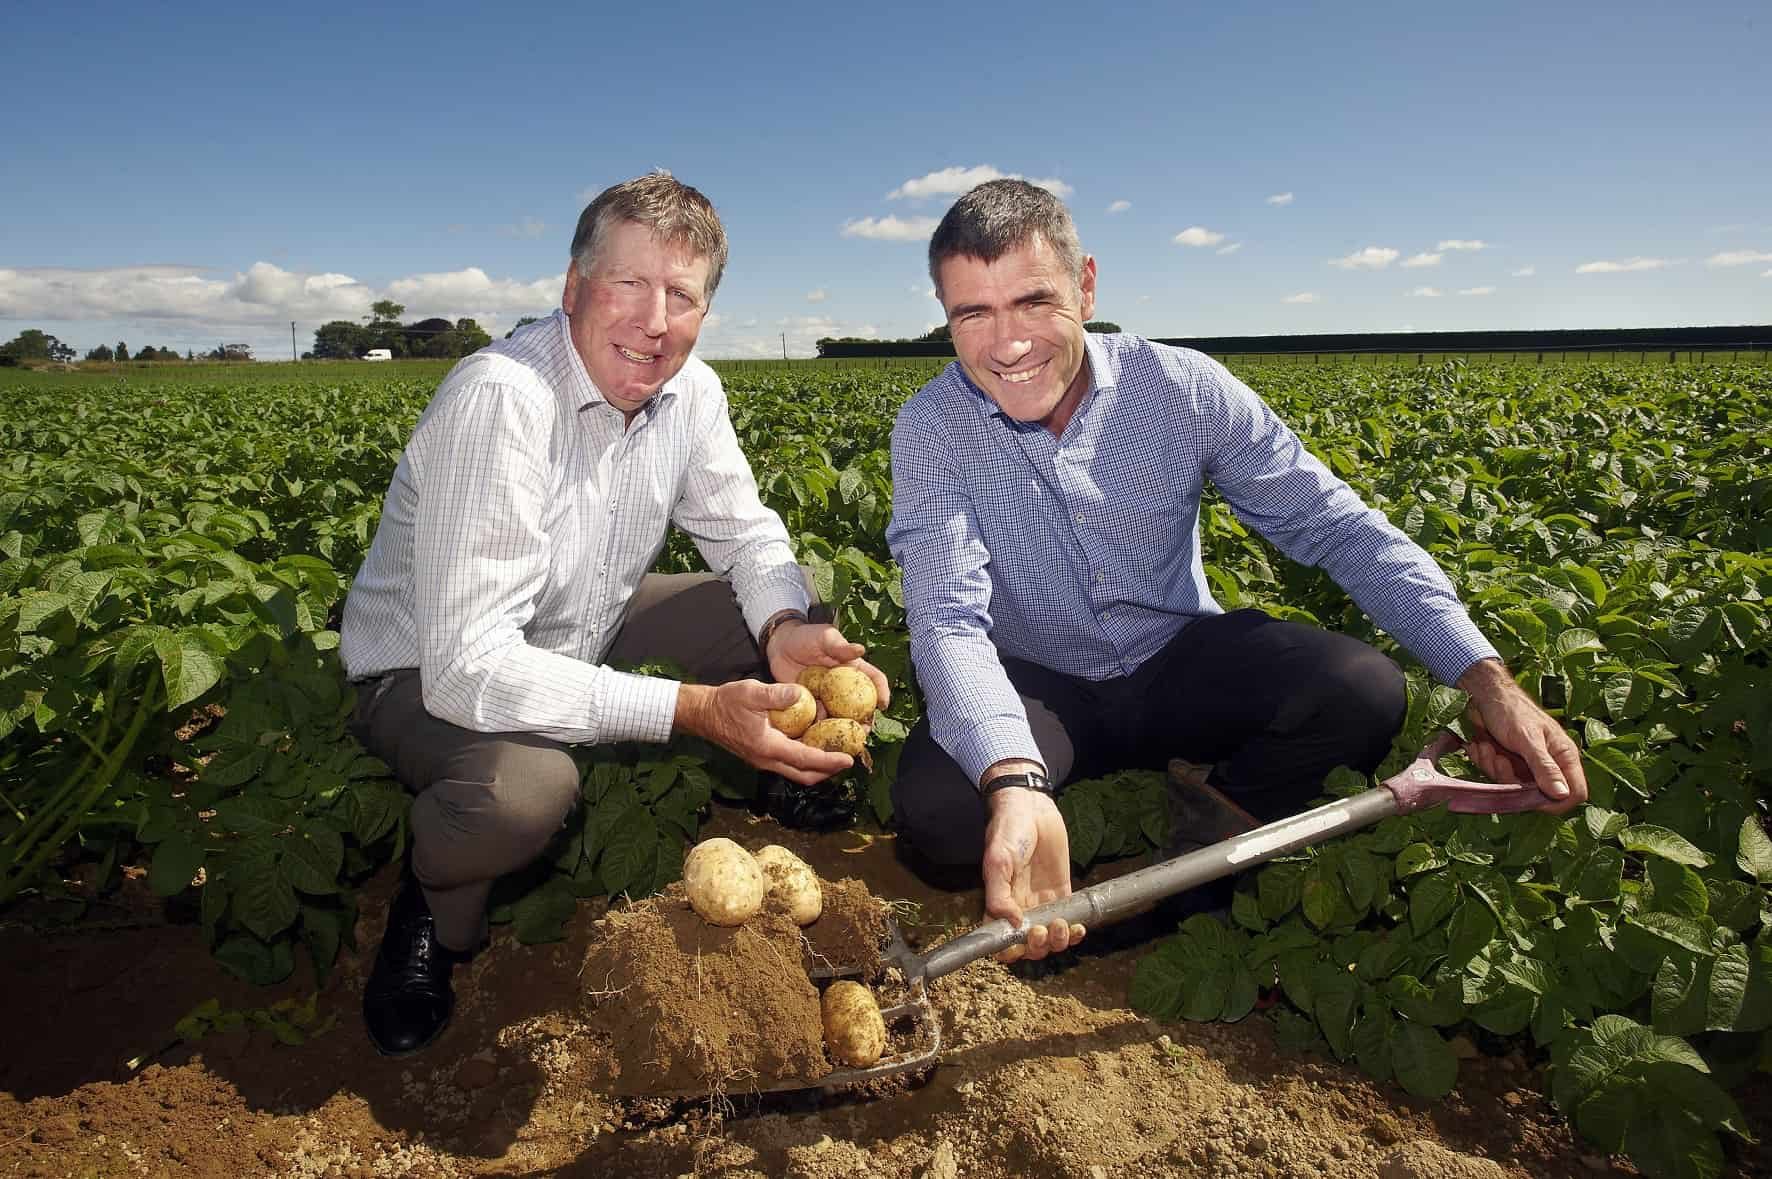 Stuart Wright and Hon Nathan Guy dig potatoes